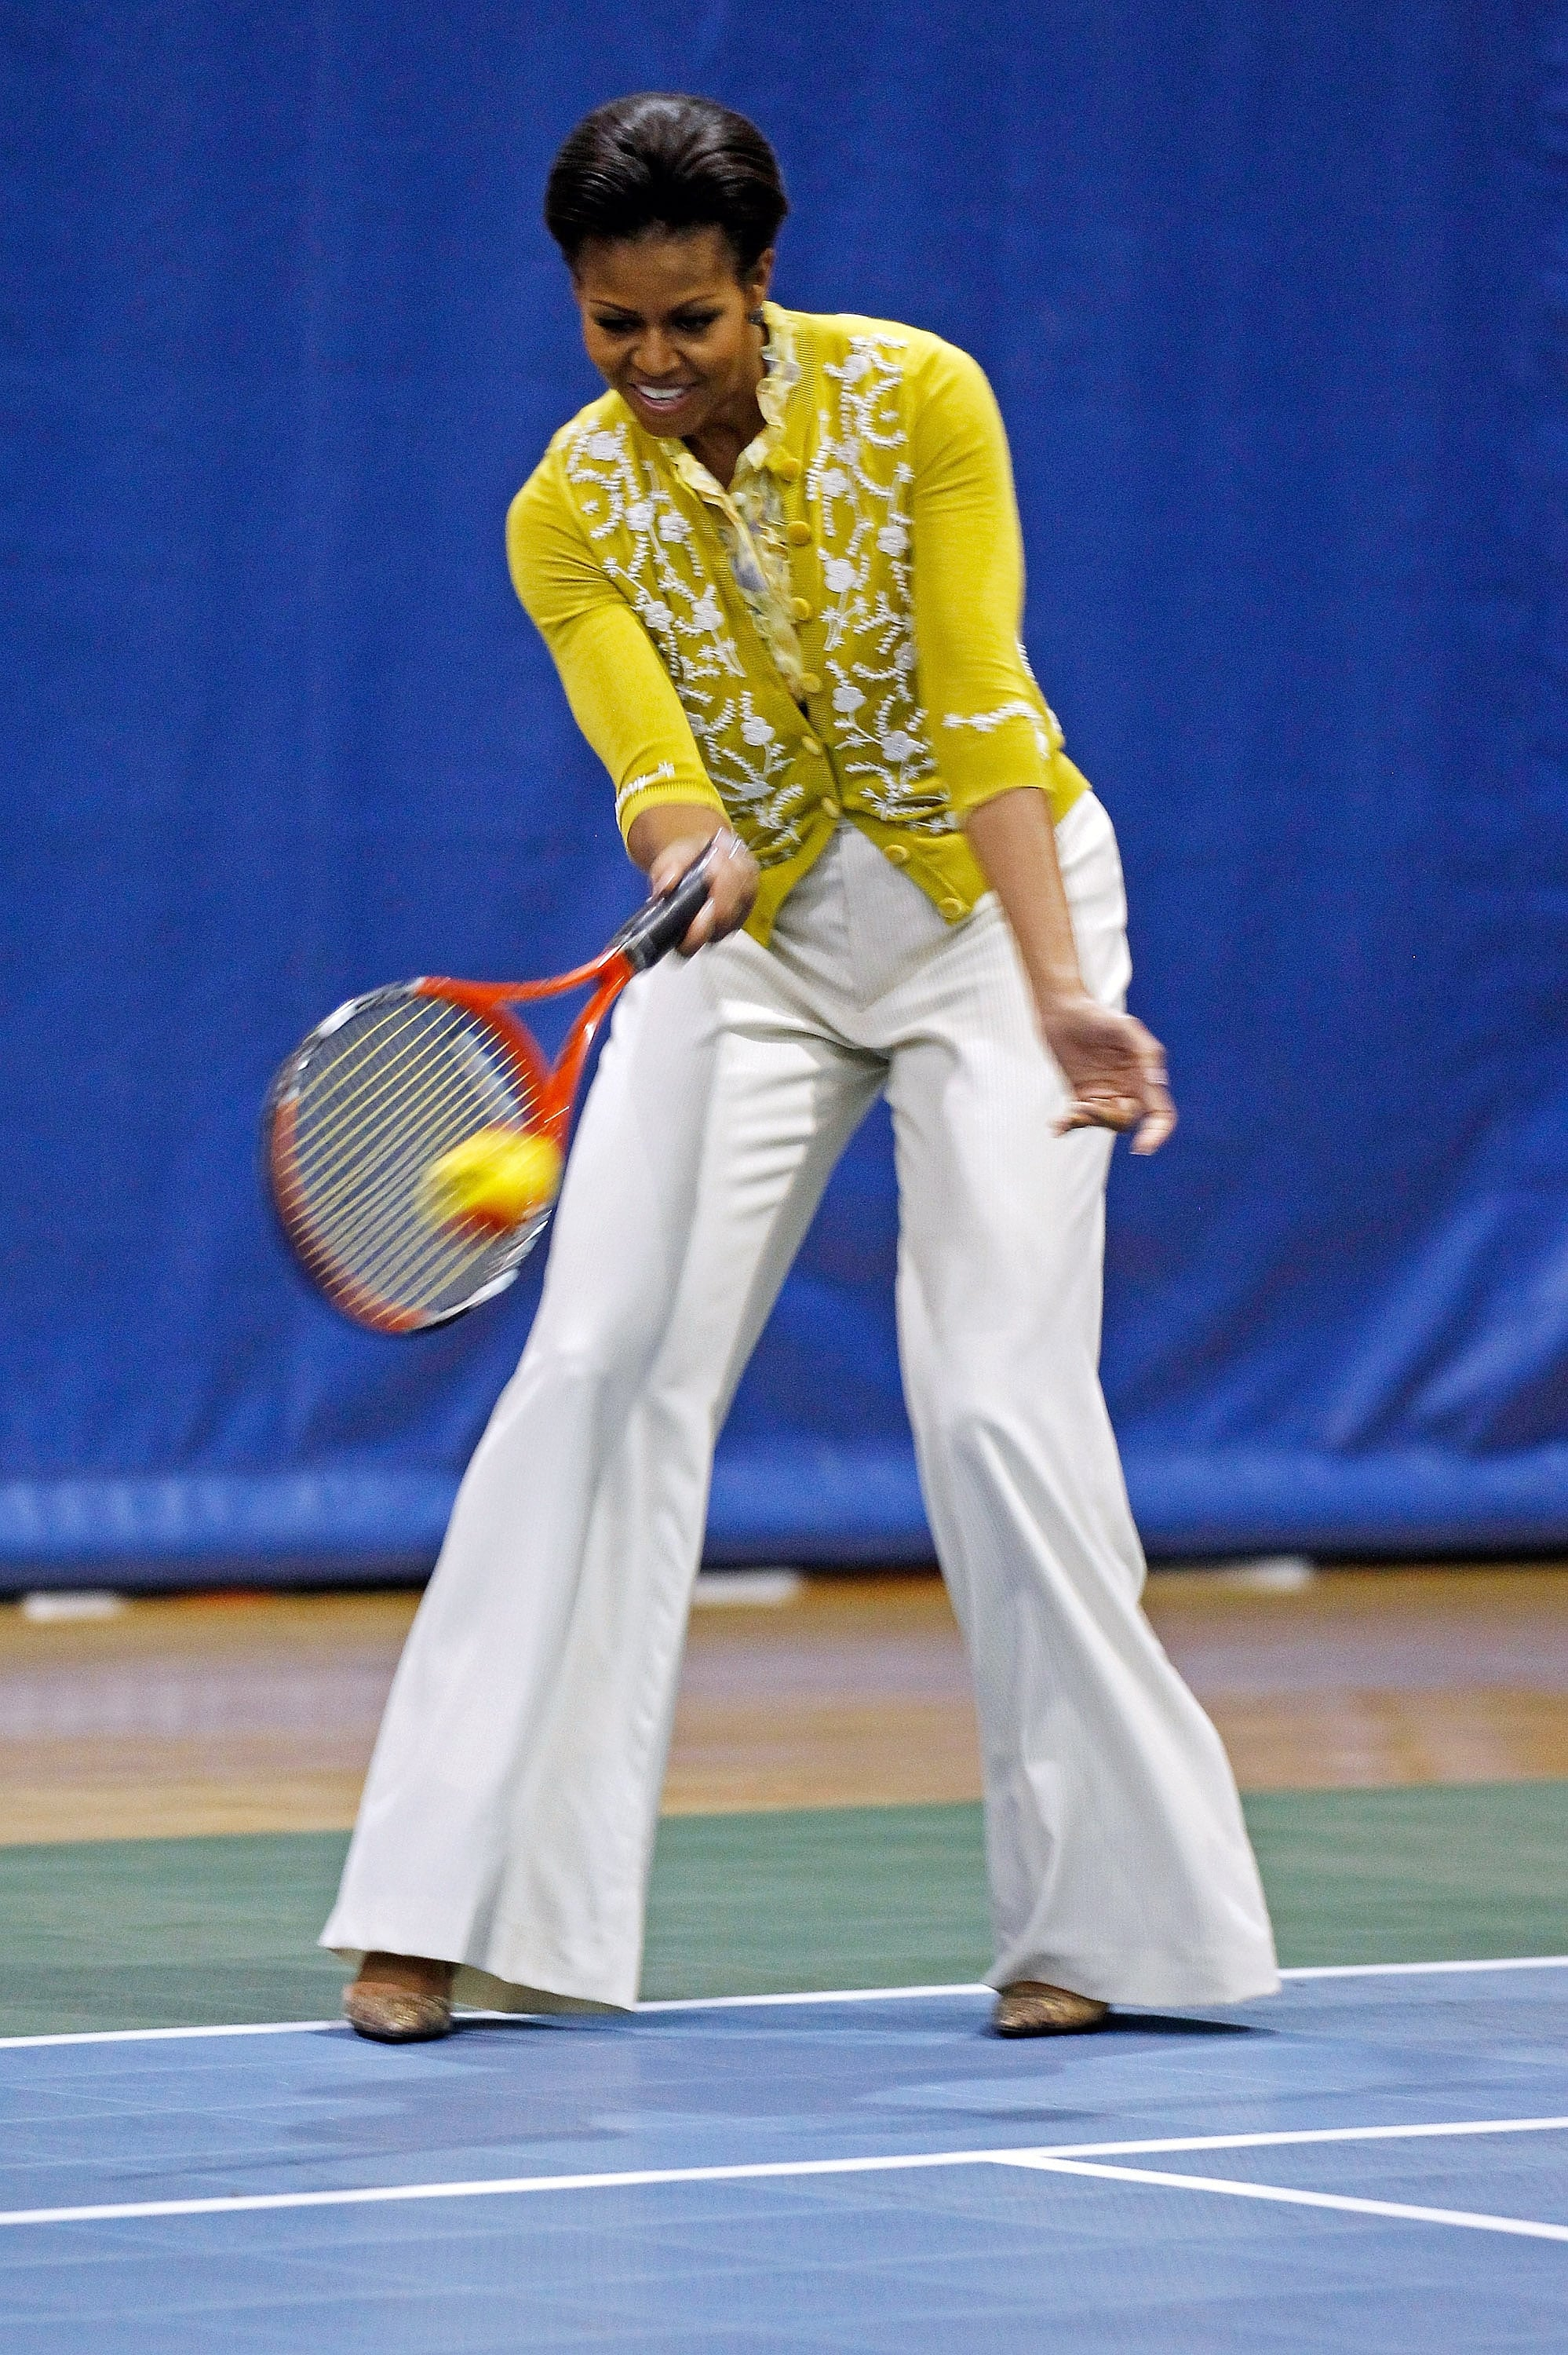 Match point! Michelle showed her sporty side by playing tennis with schoolchildren in wide-leg trousers by Zero + Maria Cornejo and a L'Wren Scott blouse and cardigan.